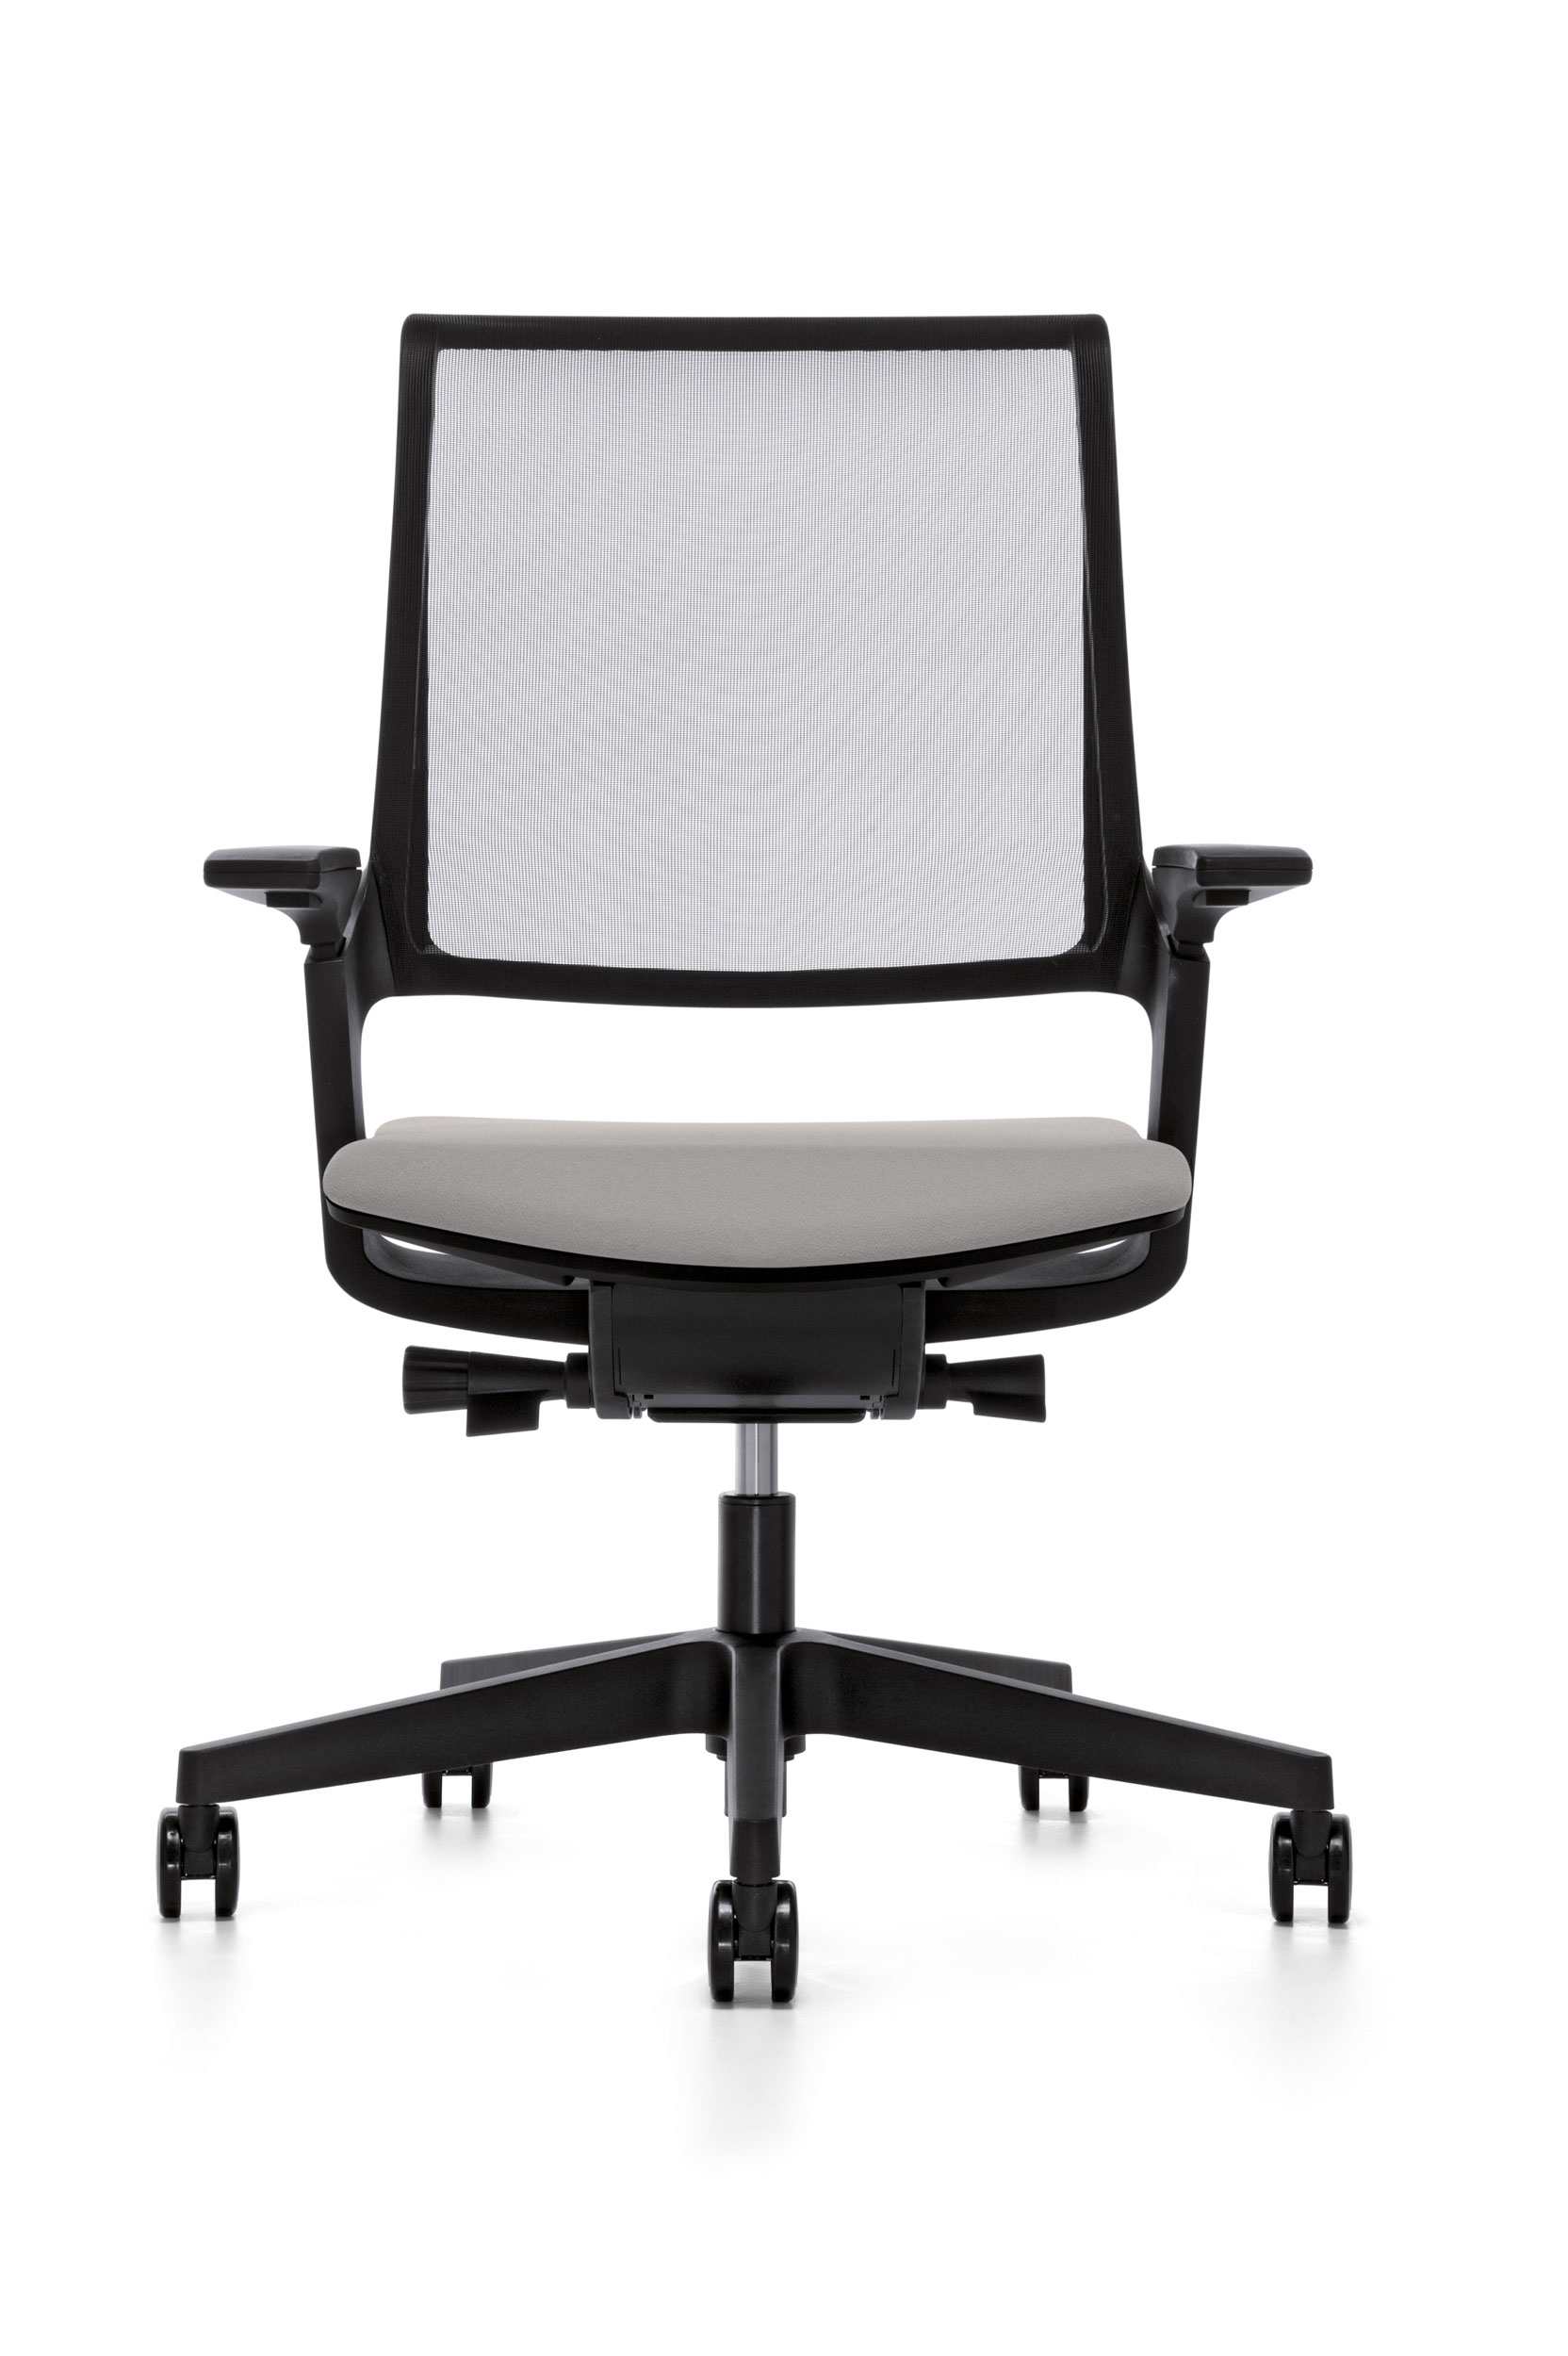 Best office chair for neck pain - Modern Office Furniture_20